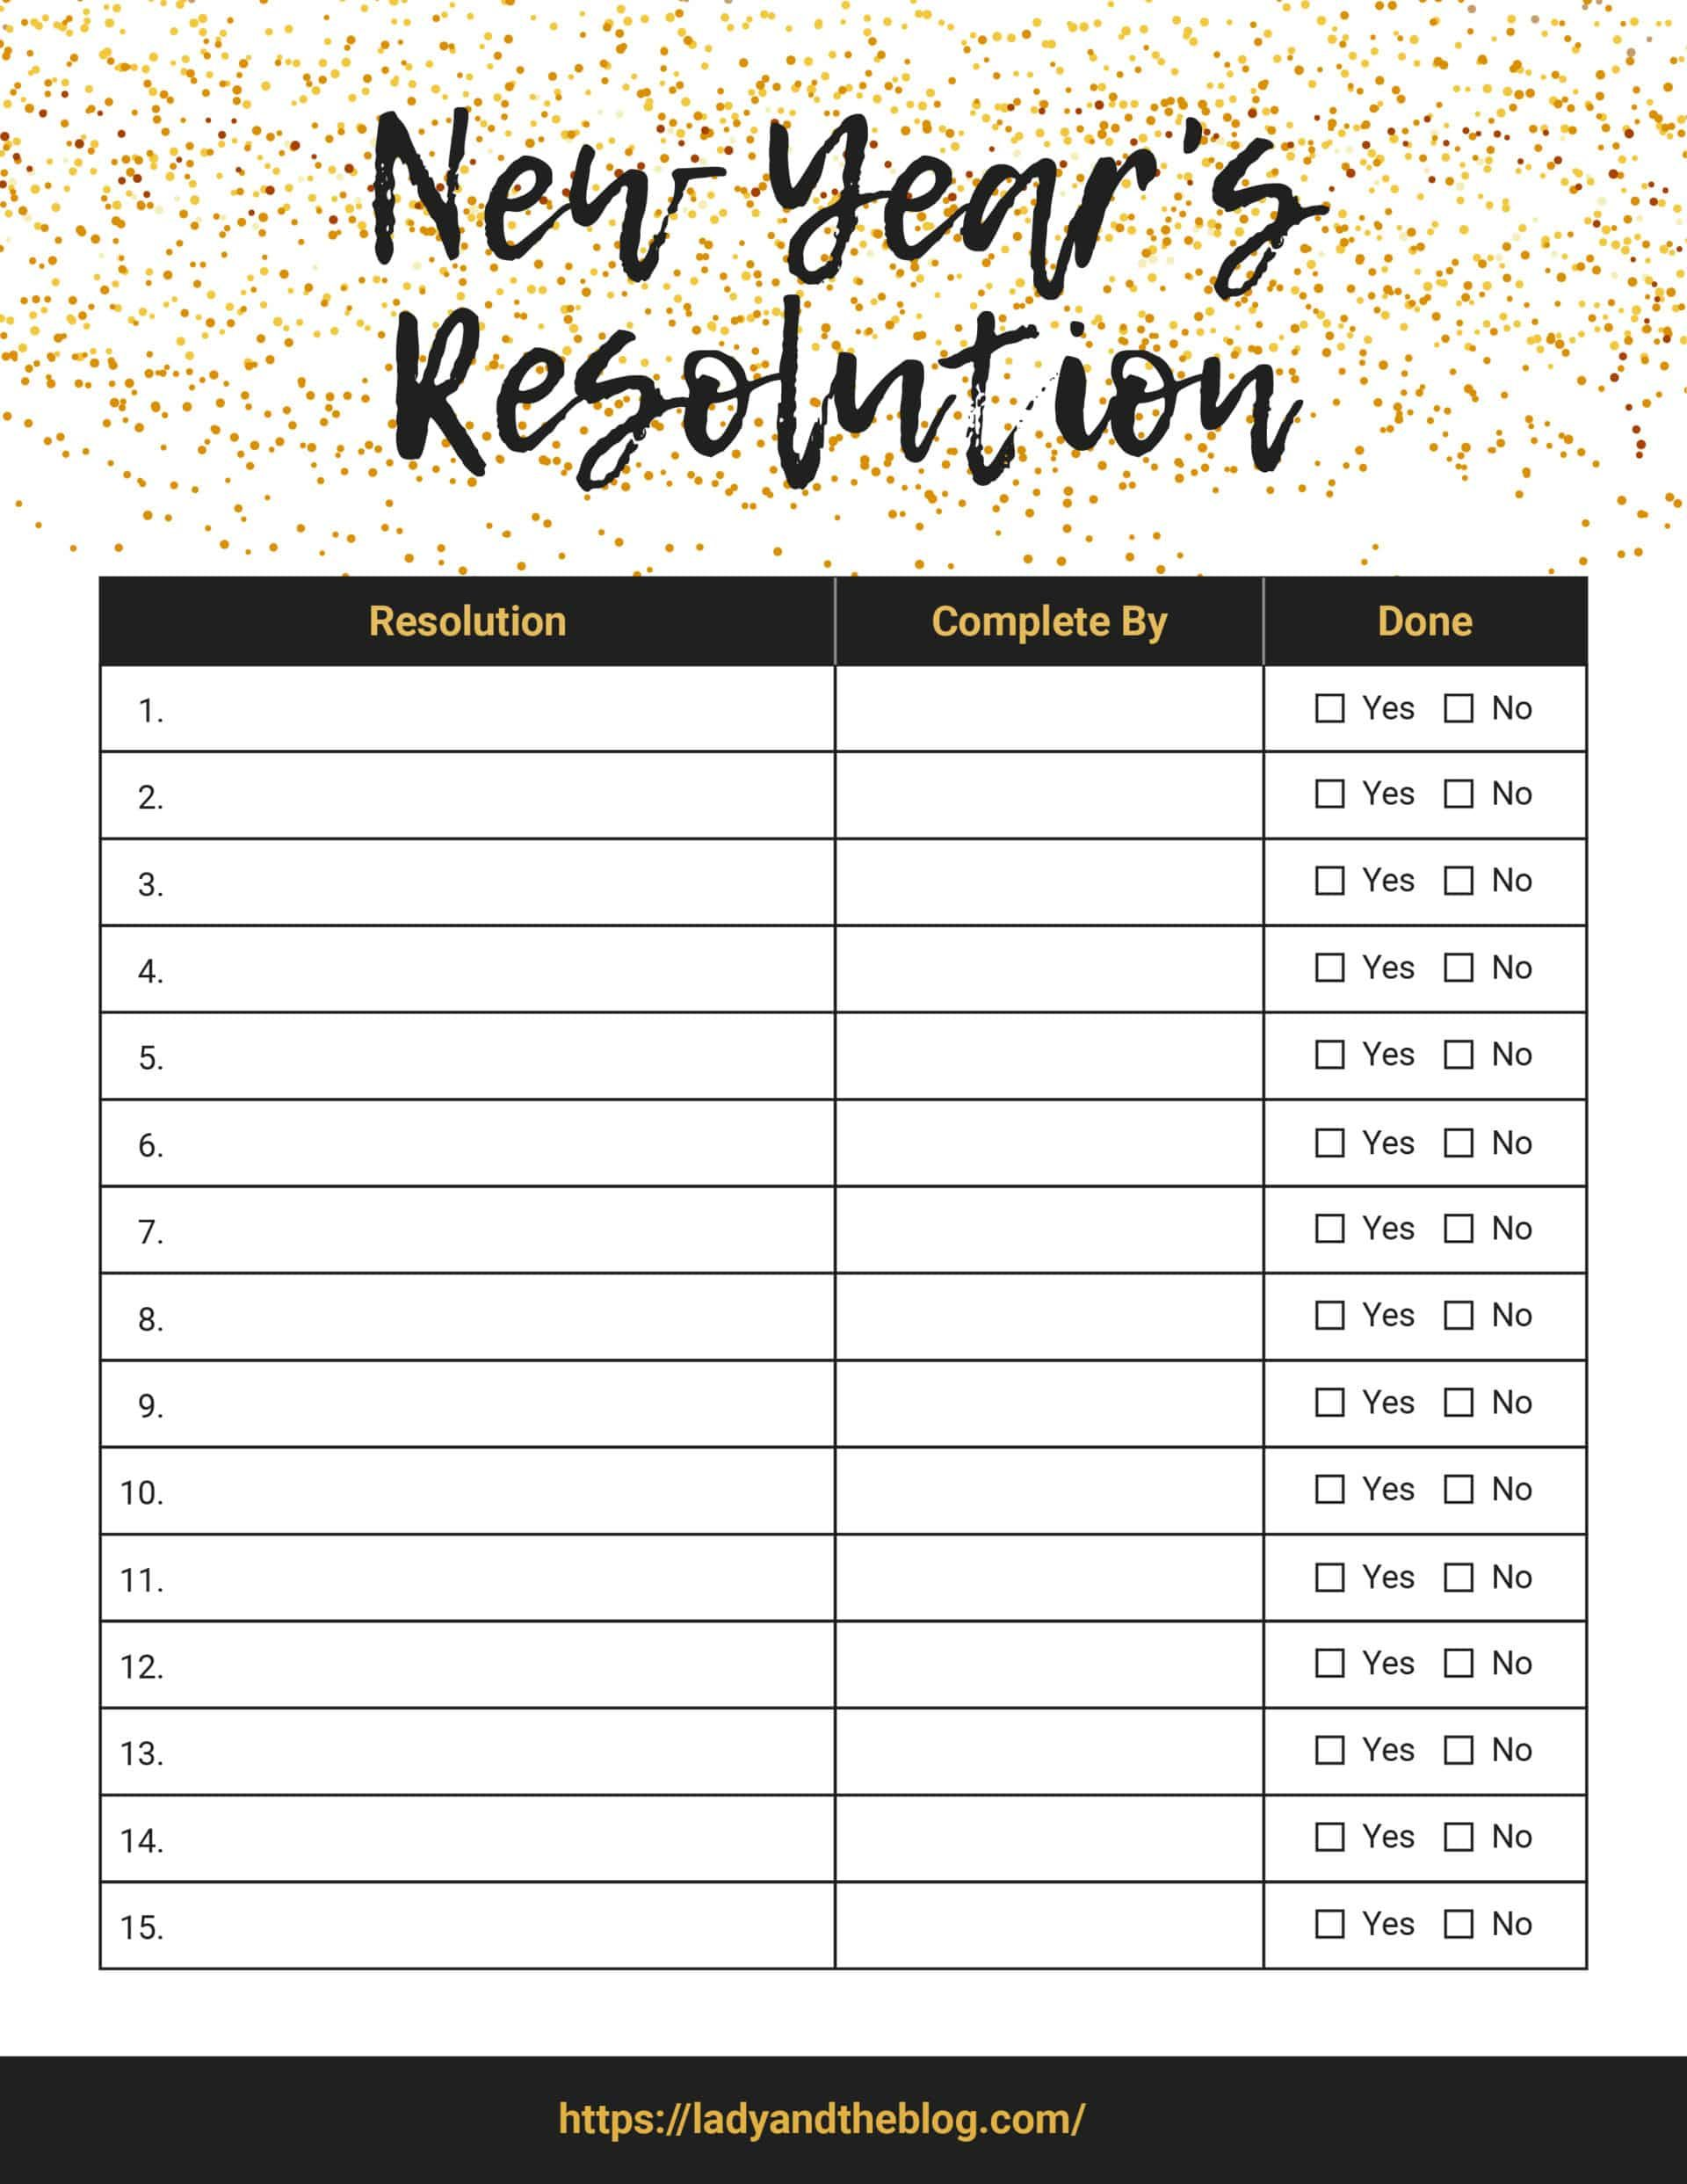 New Year S Resolution List Free Download New Years Resolution List Resolution List Resolutions List